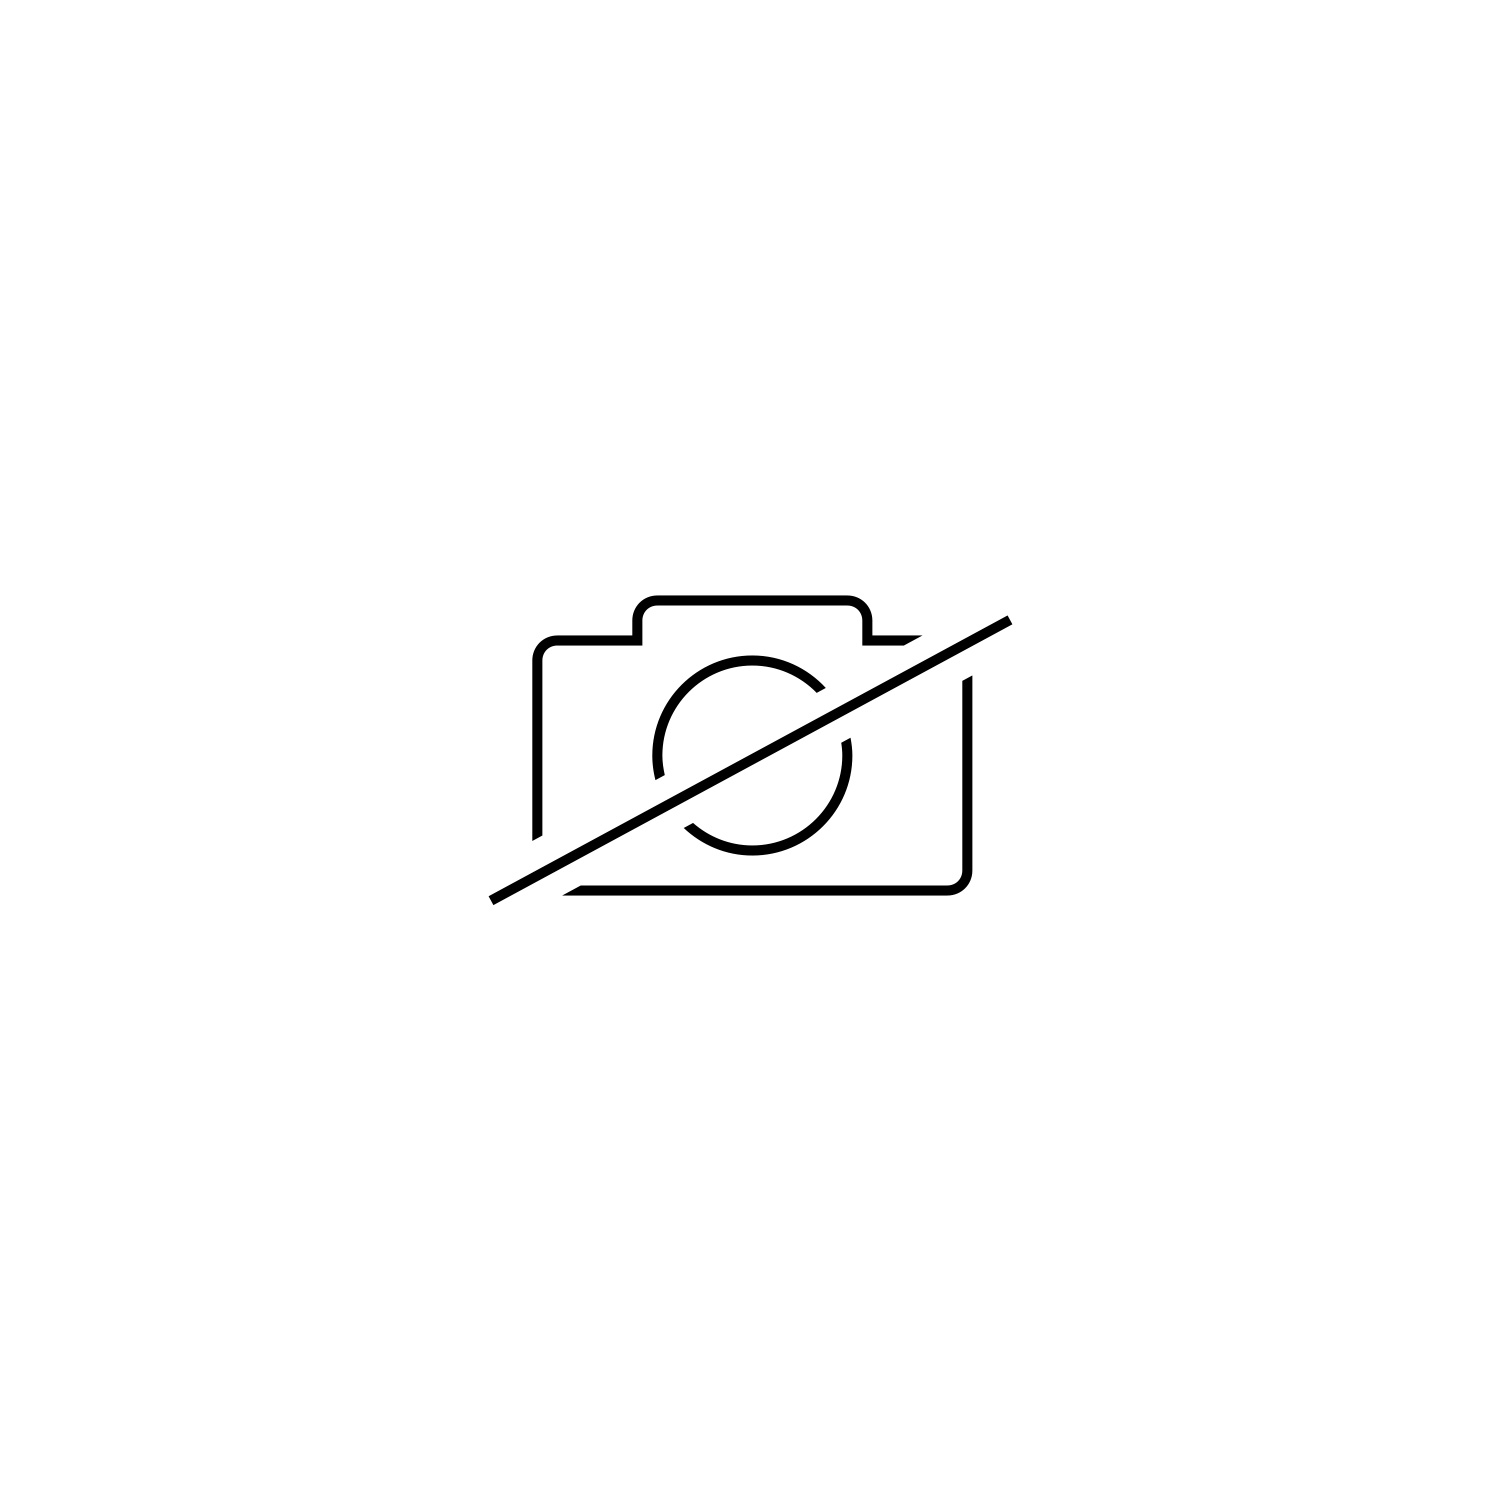 quattro T-Shirt, Mens, Light grey, XXL